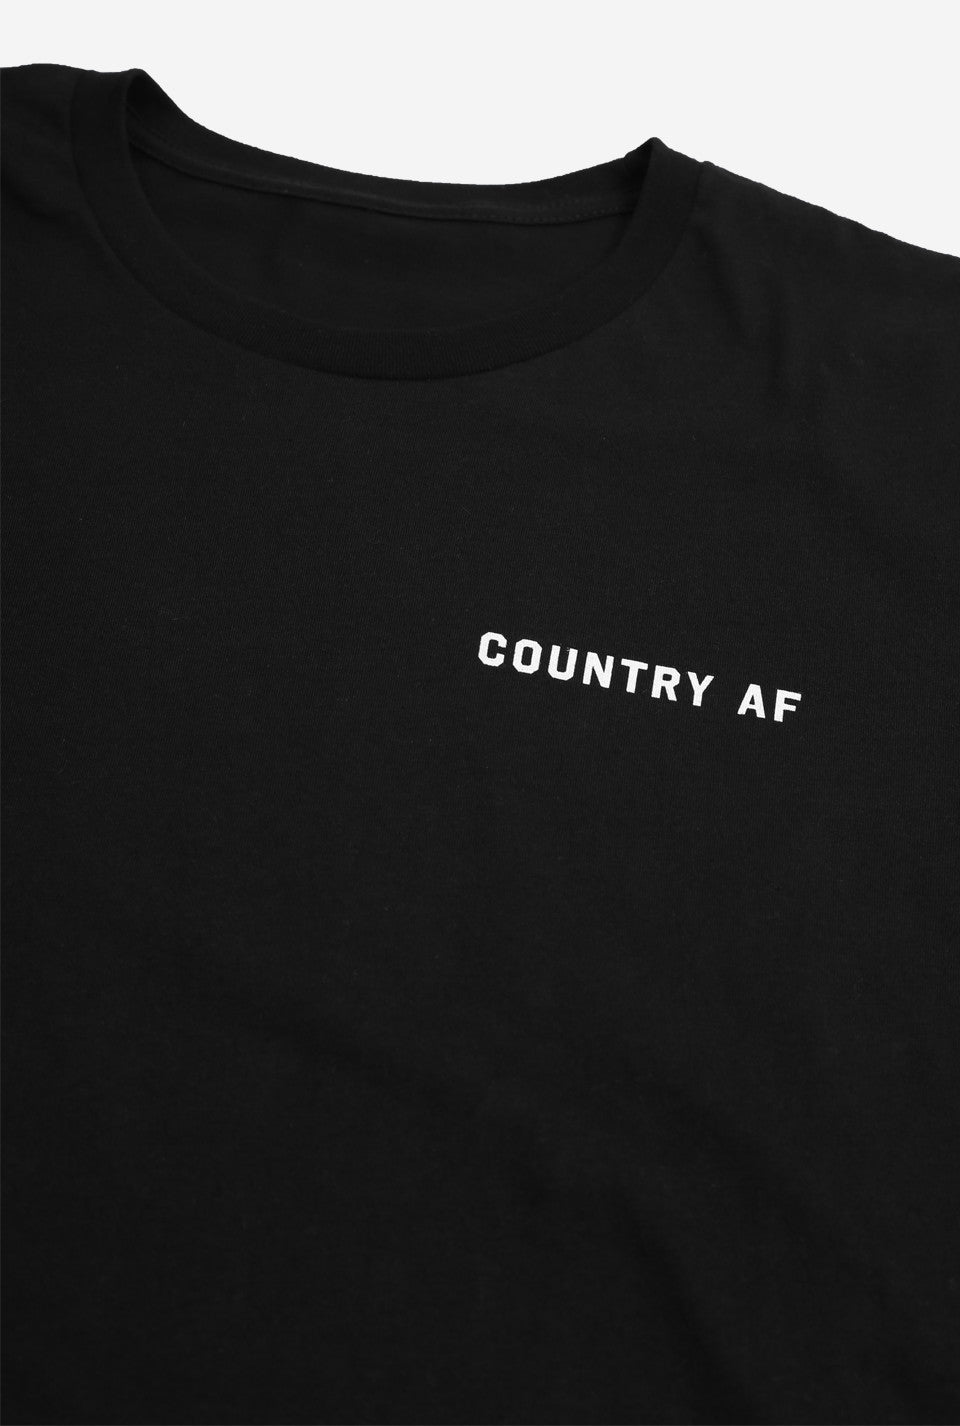 Country AF T-Shirt - Black